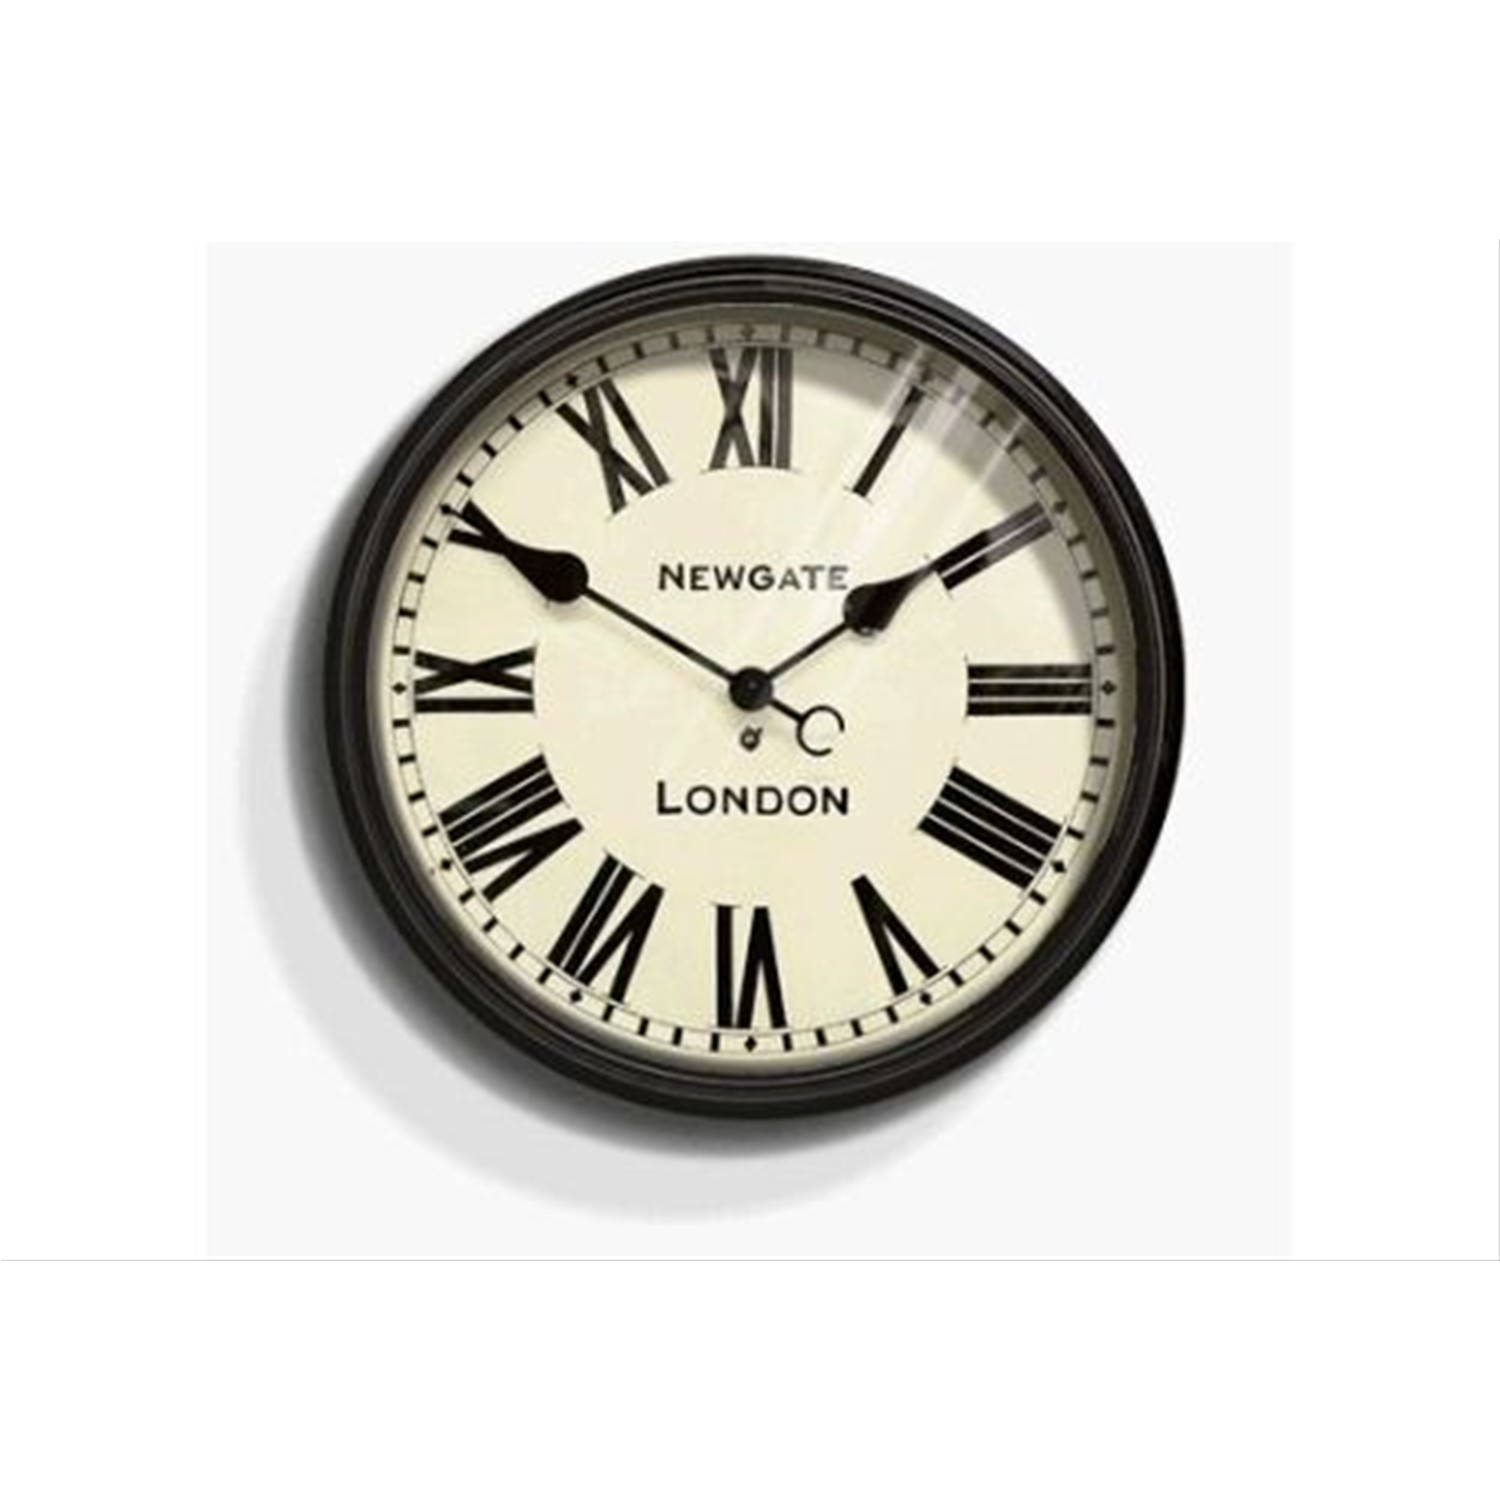 Newgate battersby wall clock for Newgate battersby wall clock